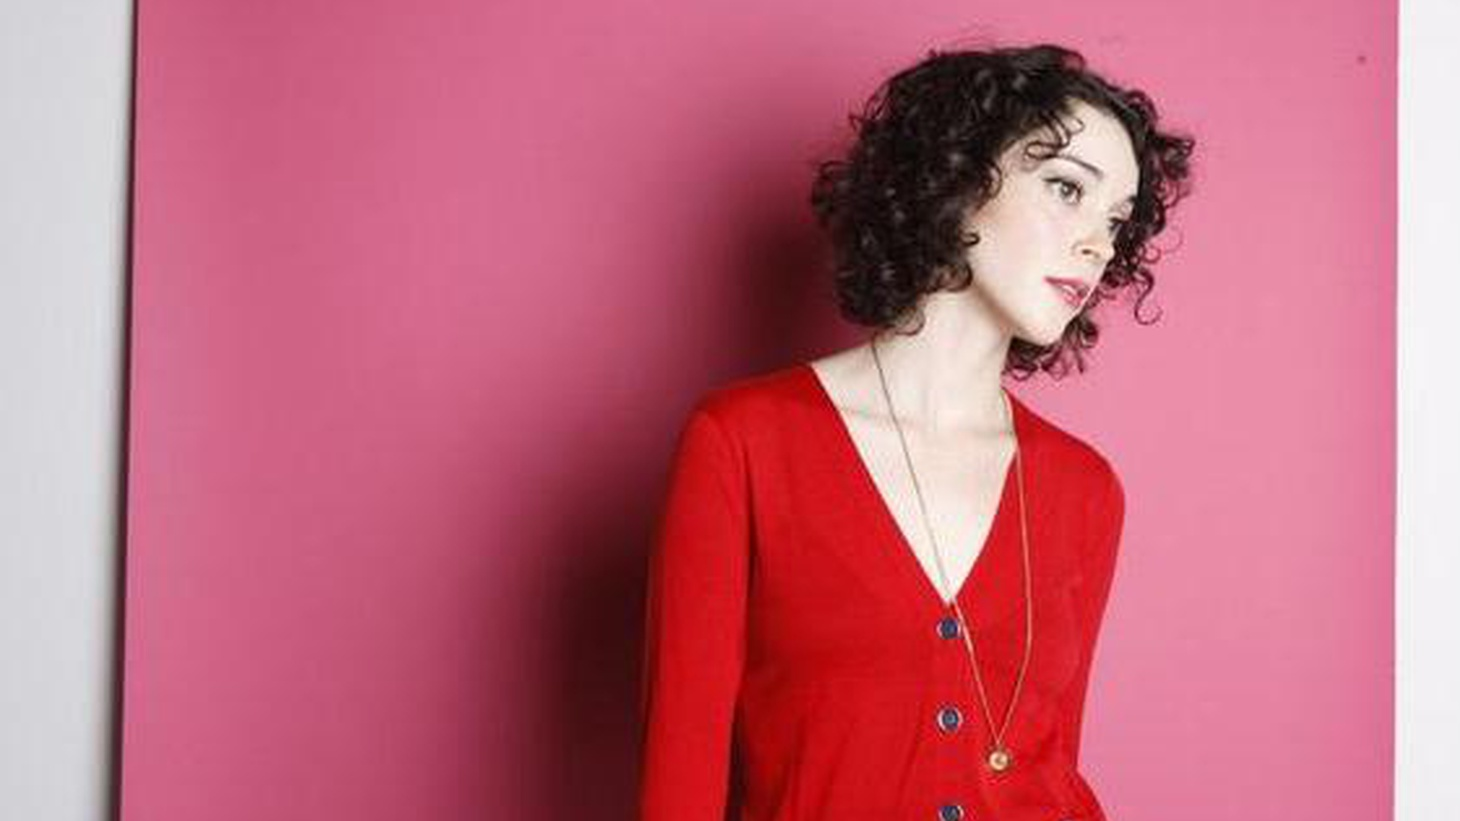 The Angelic sound of St. Vincent emanates from Annie Clark, a musician who lent her musical skills to the Polyphonic Spree and Sufjan Stevens before composing her own intricate pop songs. We'll feature a full band performance of songs from her critically-acclaimed release Actor on Morning Becomes Eclectic at 11:15am.